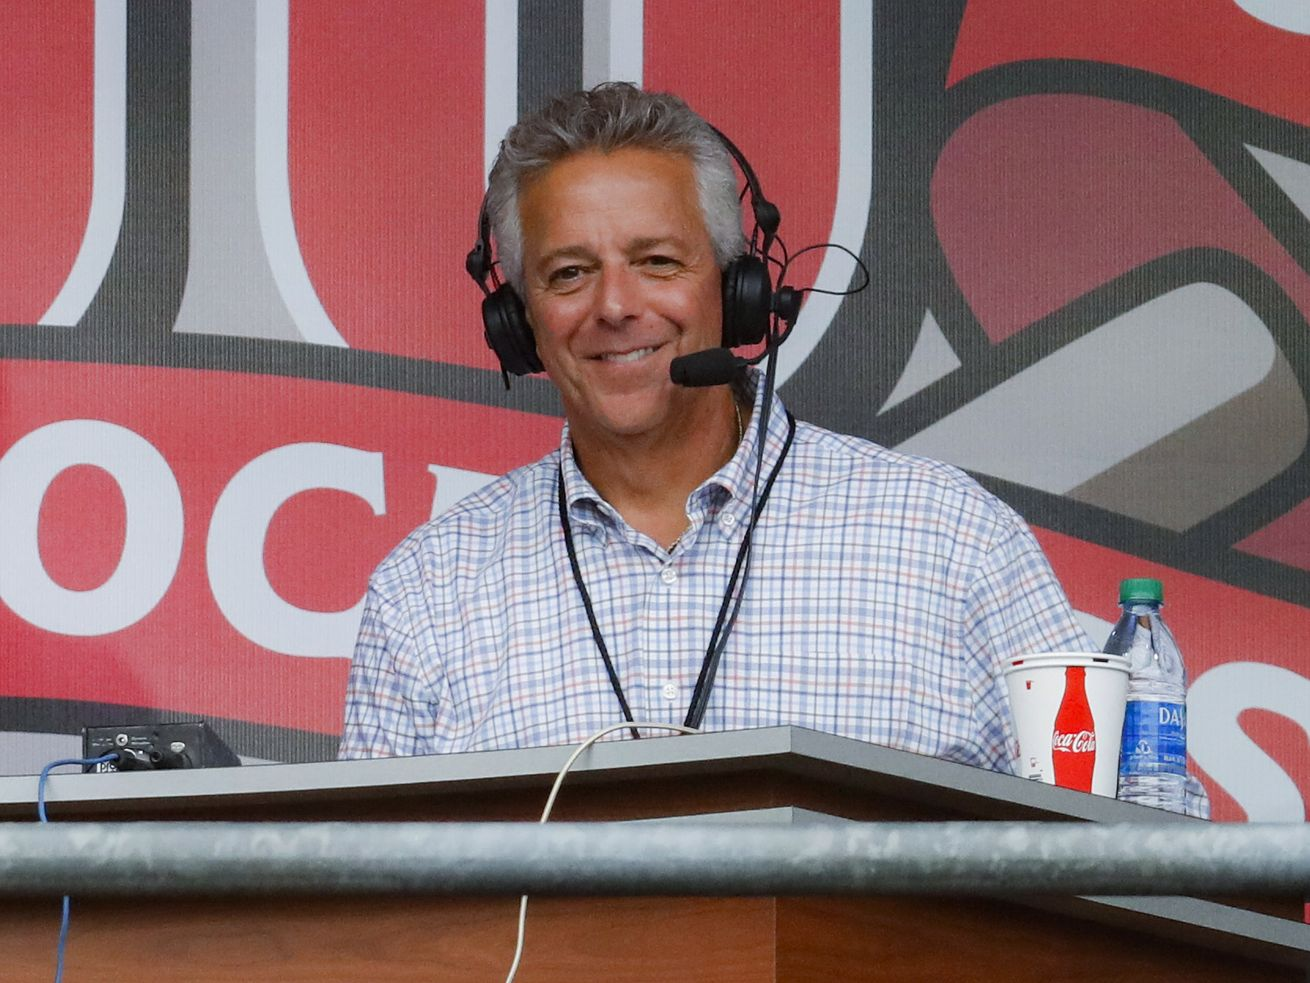 Thom Brennaman, Mark Grace and the problem with being yourself